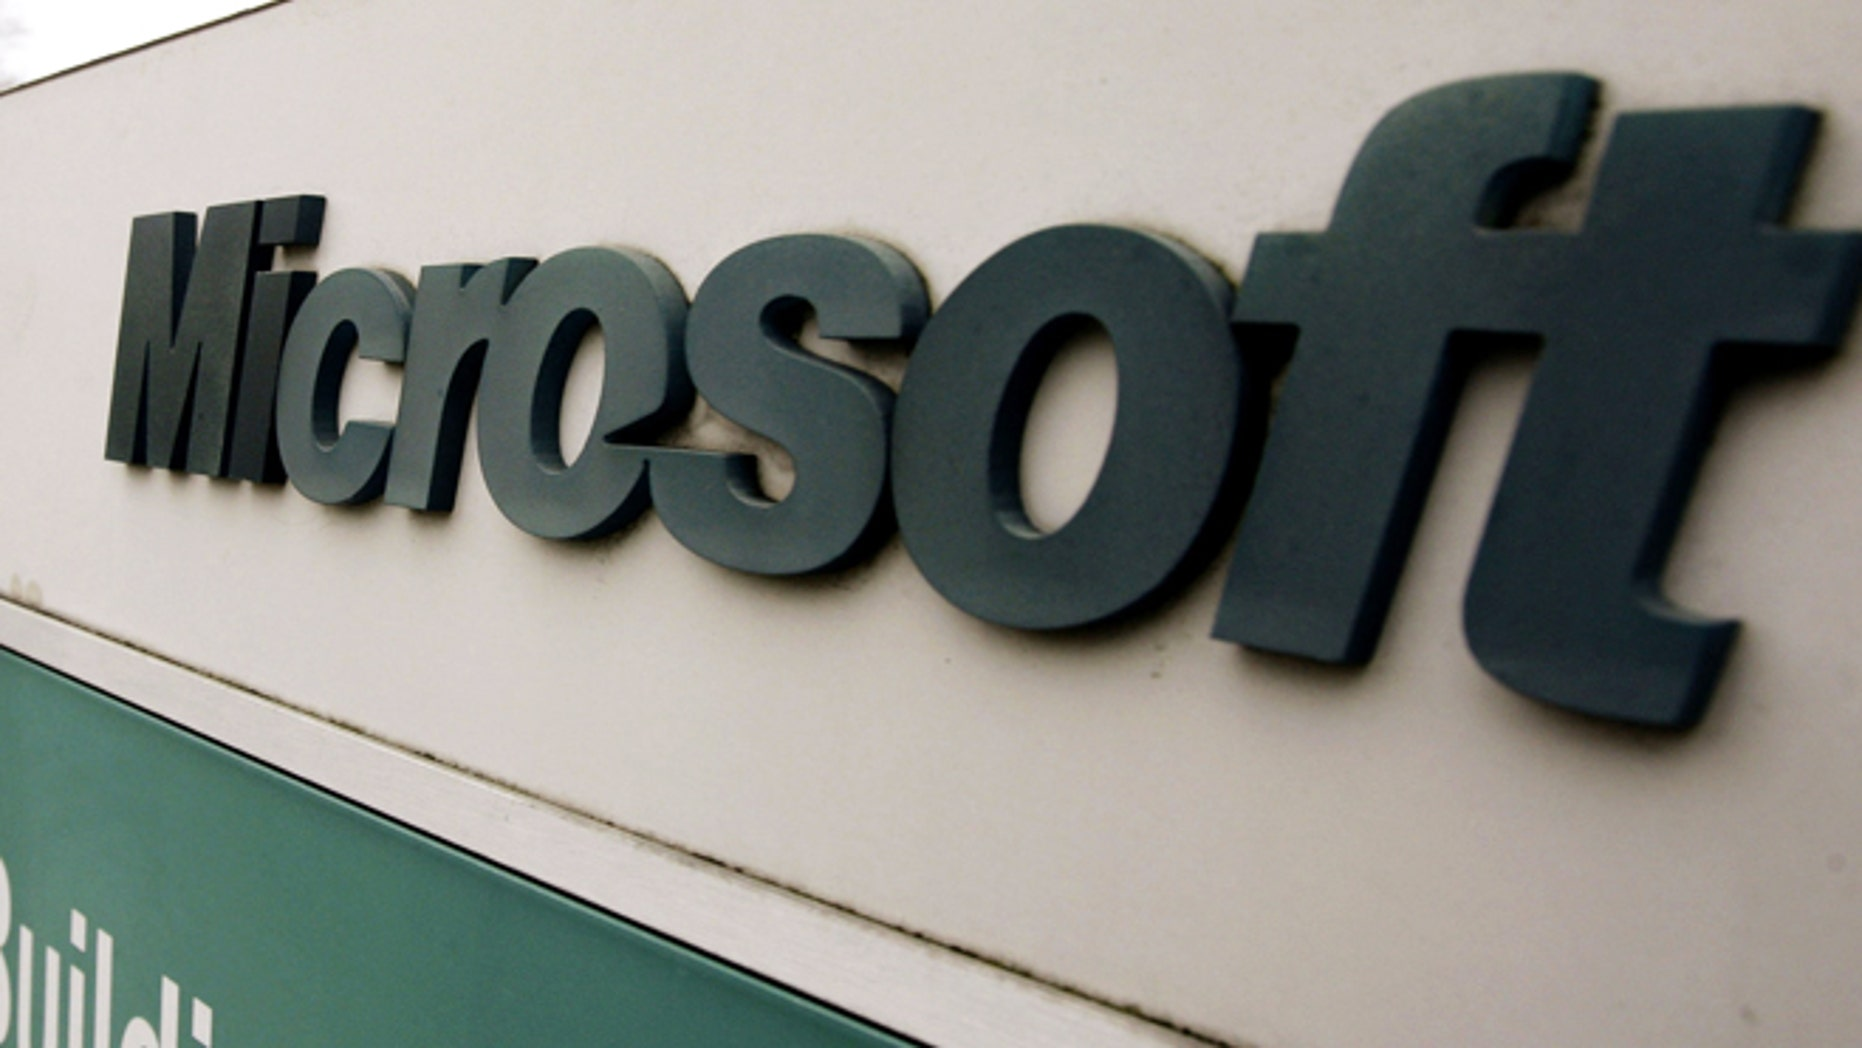 Amid slumping PC sales and a changing consumer landscape, Microsoft announced a massive reorganization of its corporate structure.